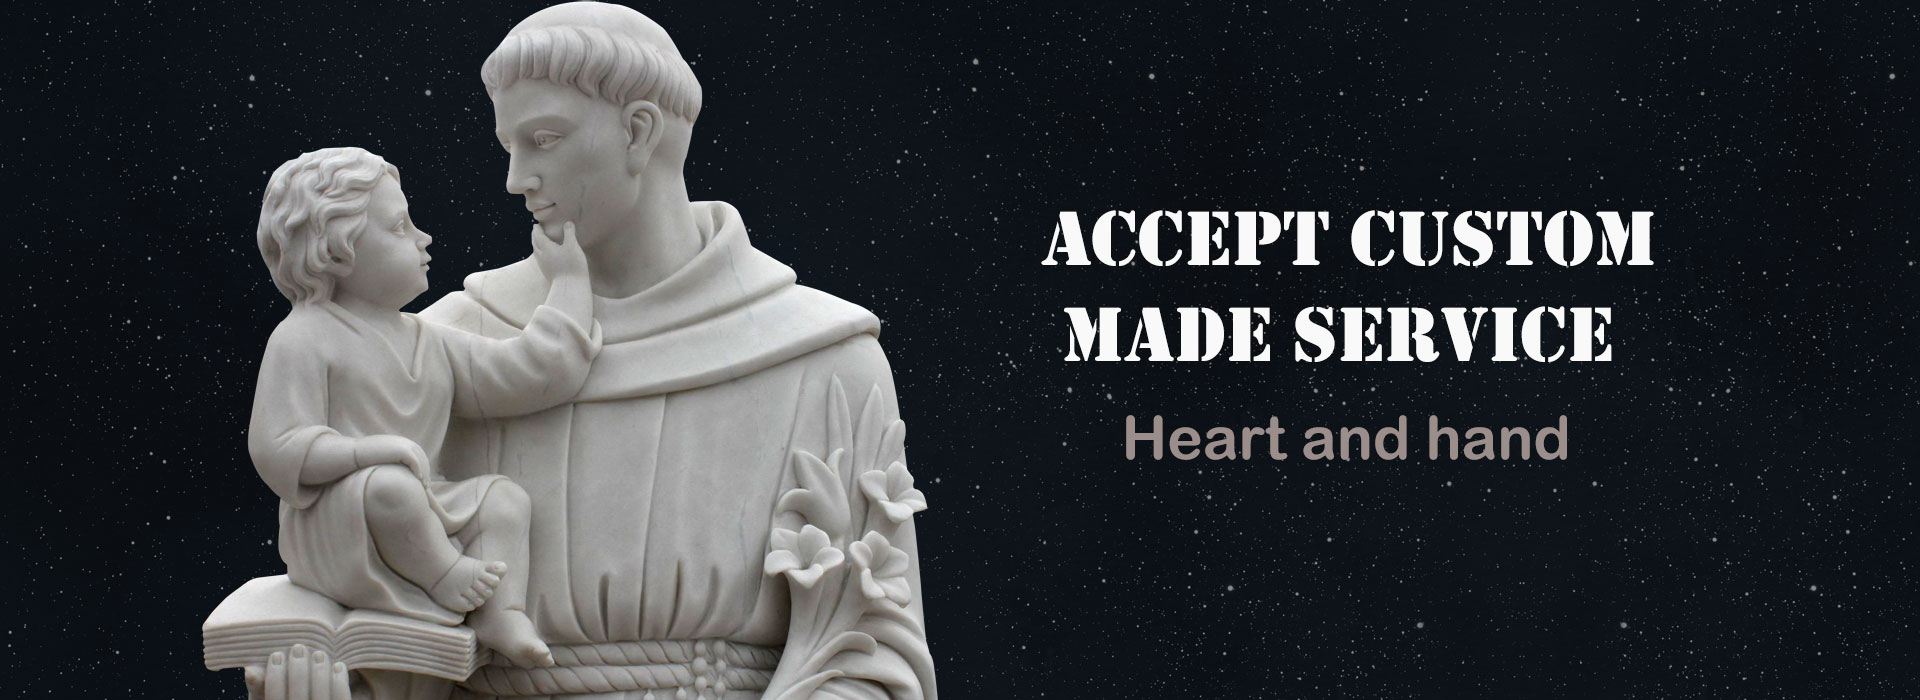 Relief character stone statue saint Anthony statue quotes for outdoor decor UK